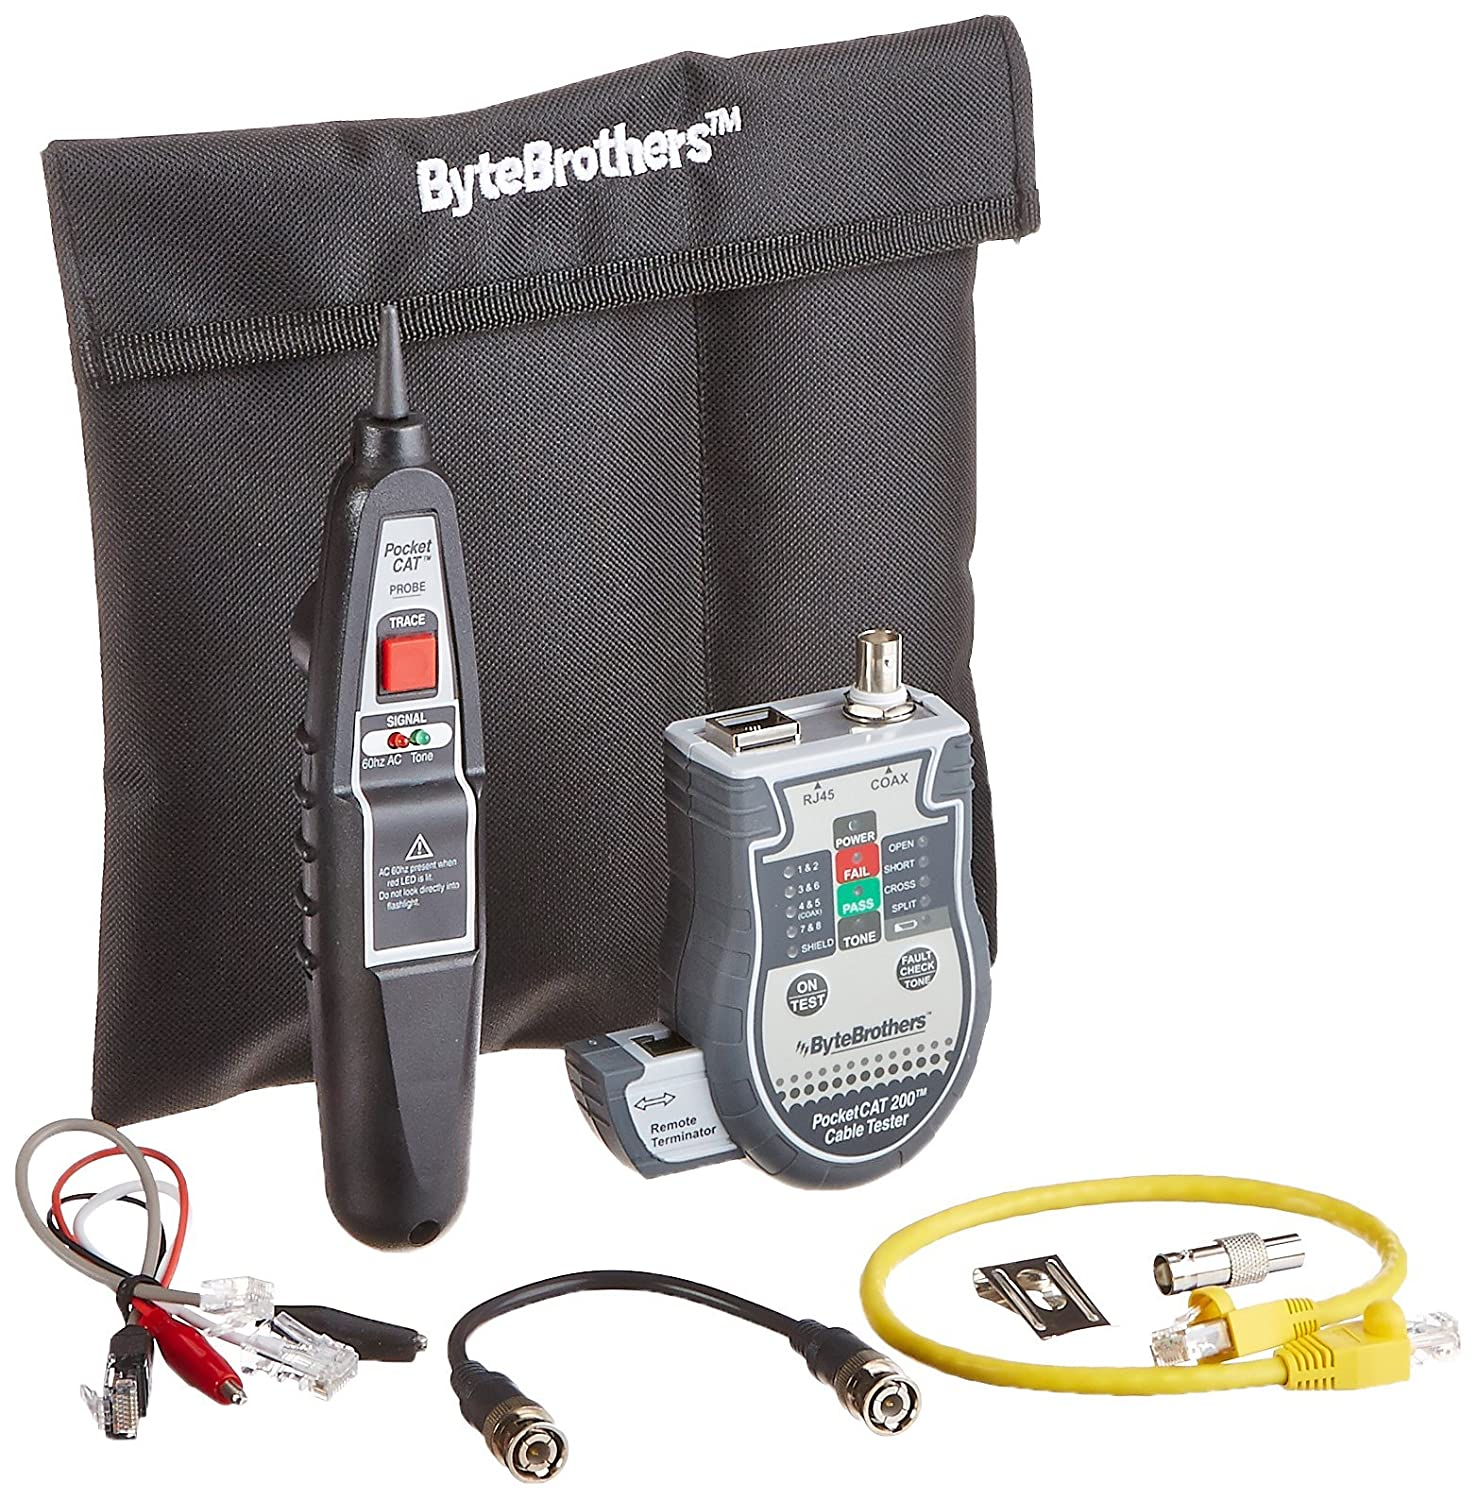 Triplett Byte Brothers Pocket CAT LAN Tester with Inductive Tone Probe for RJ45 CAT5 CAT6 & Coax Cables - Performs TIA568 Tests on CAT5/6 Network Cables with Instant Pass-Fail Results -(CTX200P)